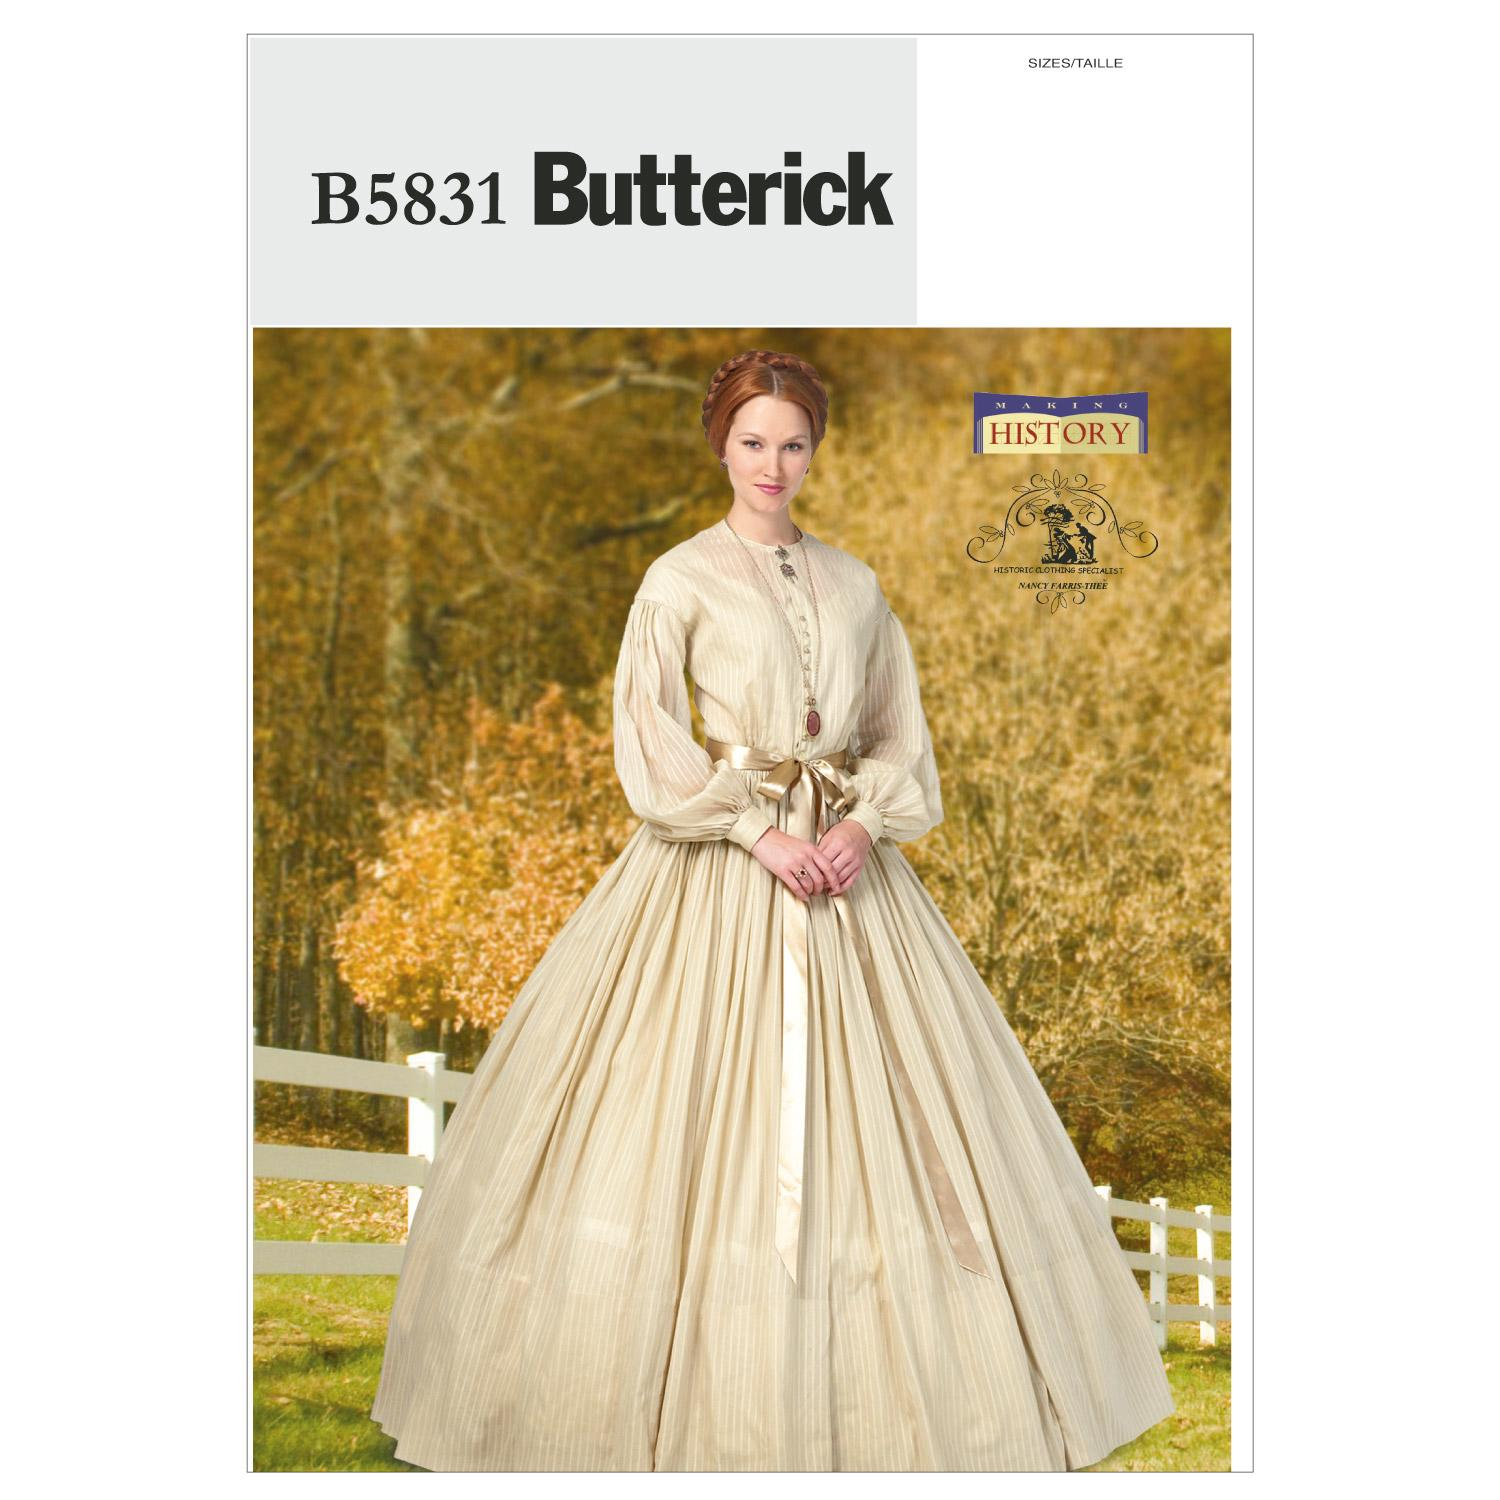 Butterick B5831 Misses' Dress